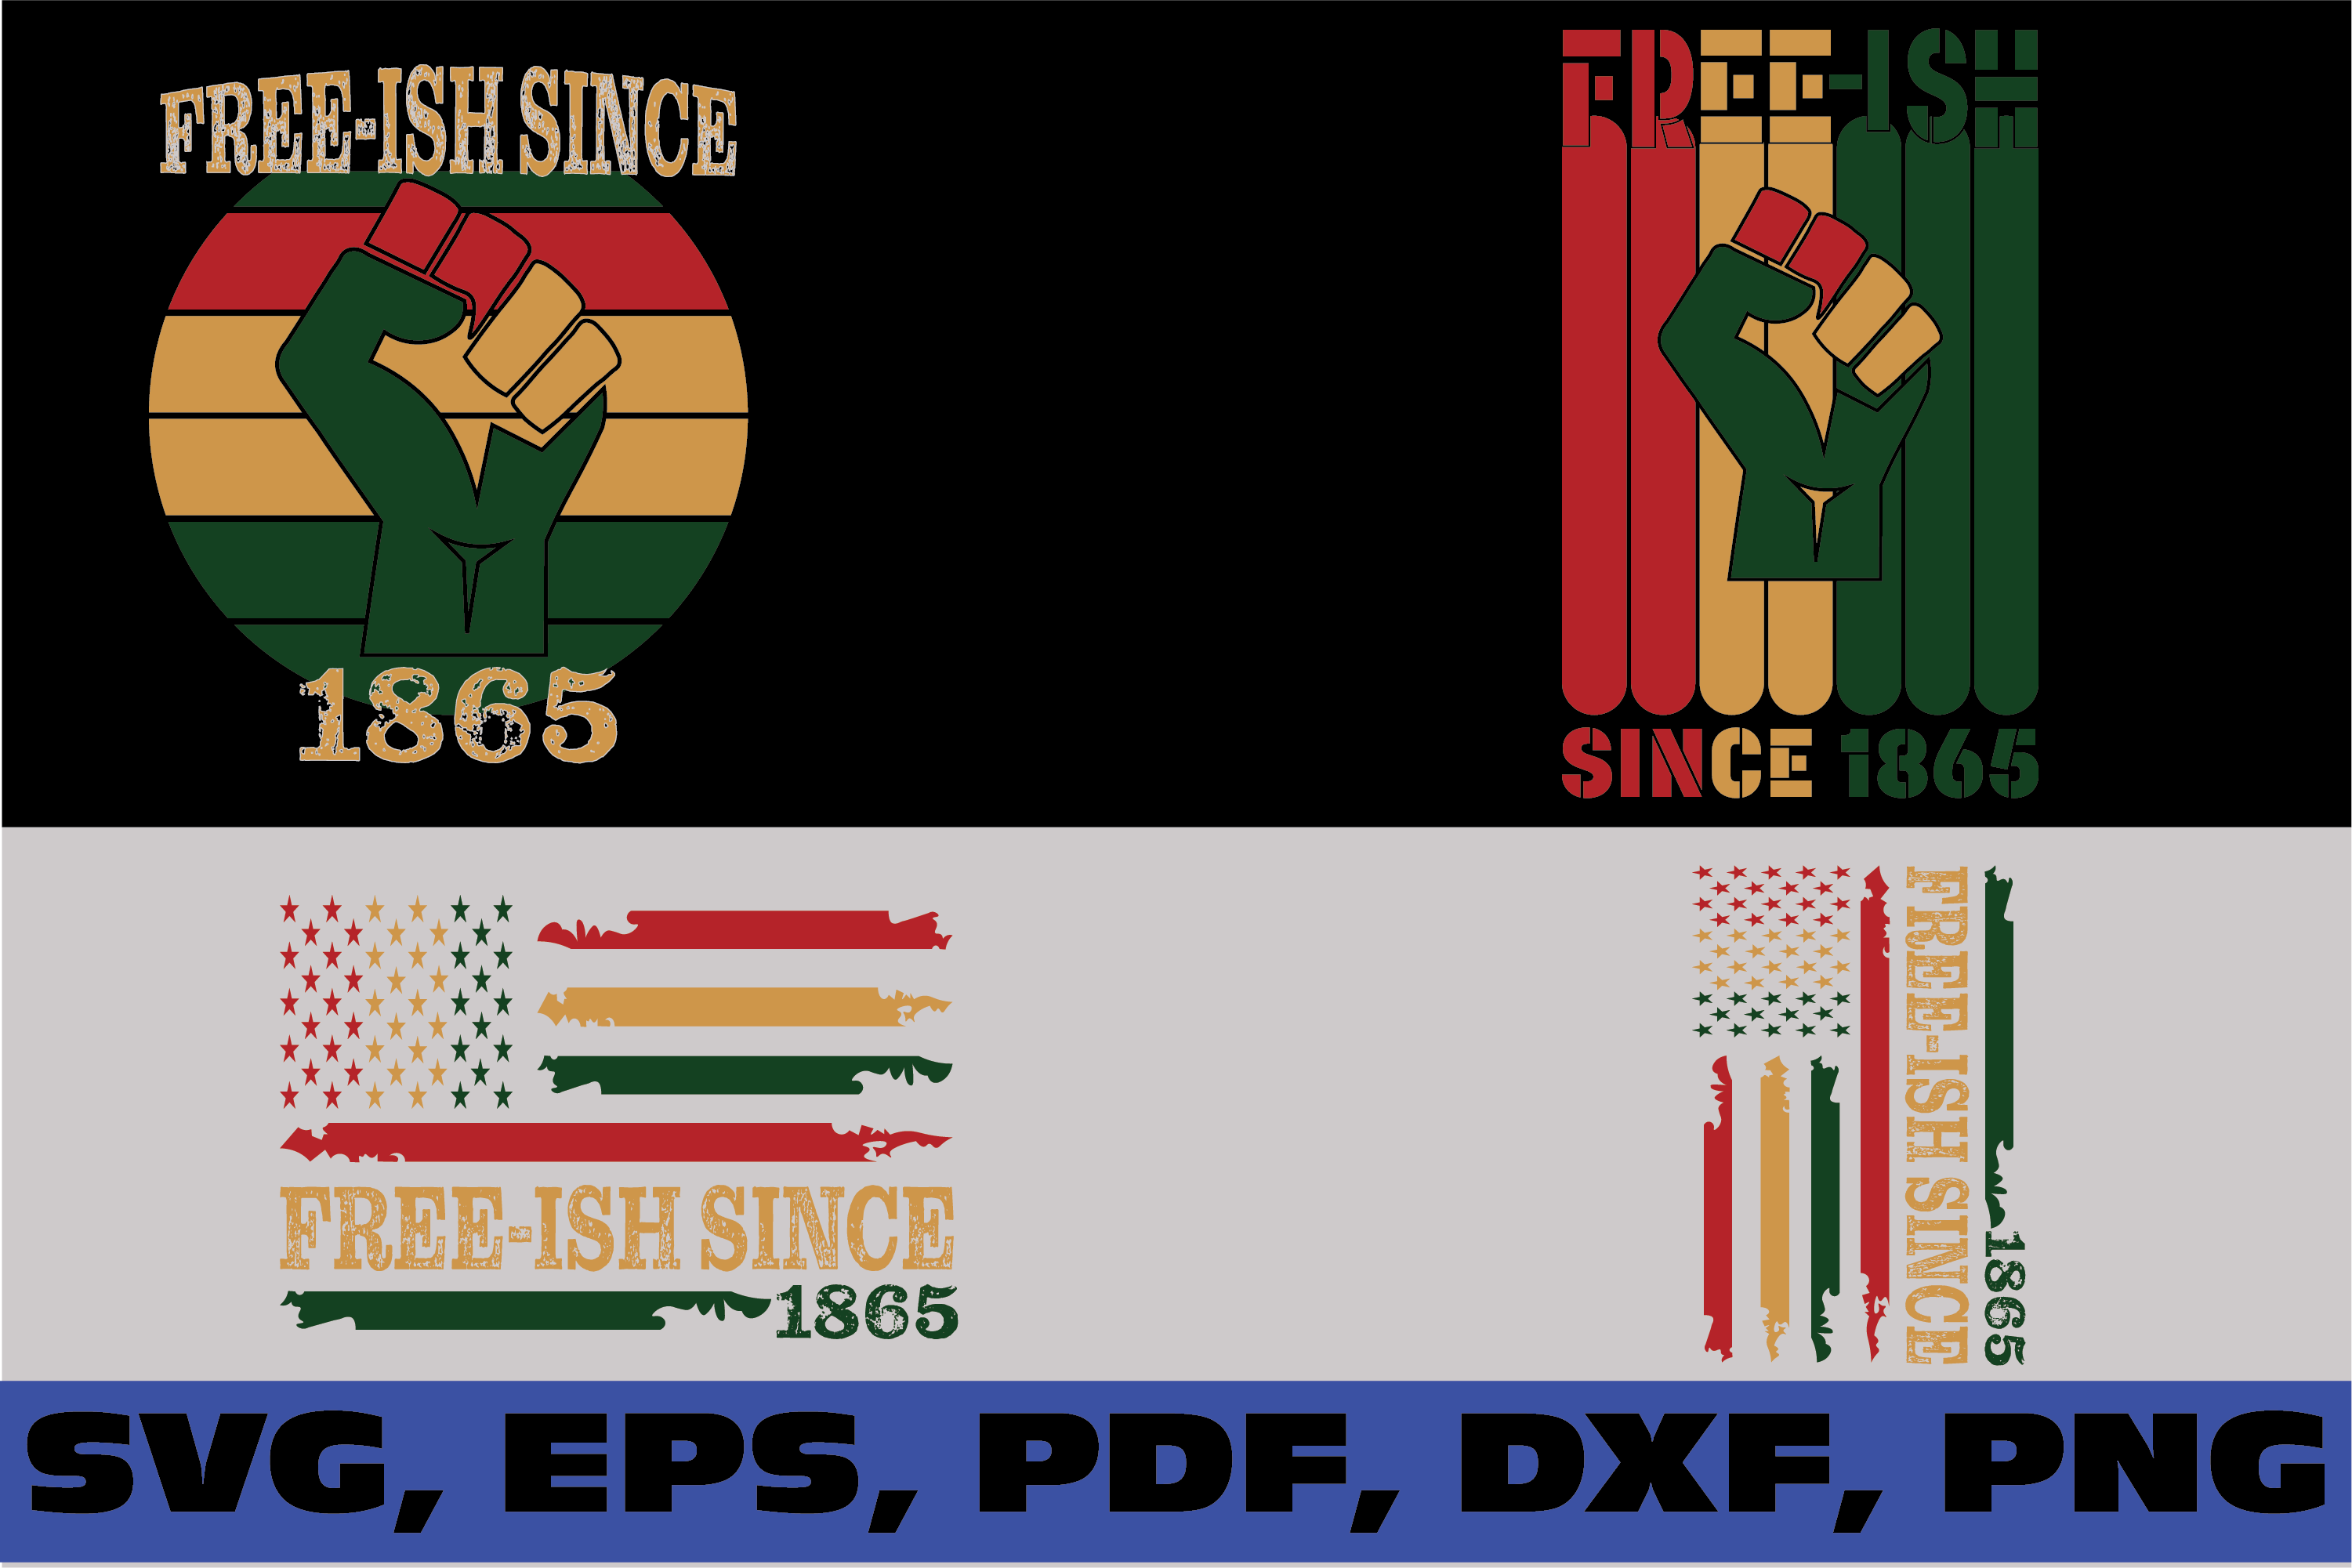 Download Free Free Ish Since 1865 Graphic By Dodo2000mn1993 Creative Fabrica for Cricut Explore, Silhouette and other cutting machines.